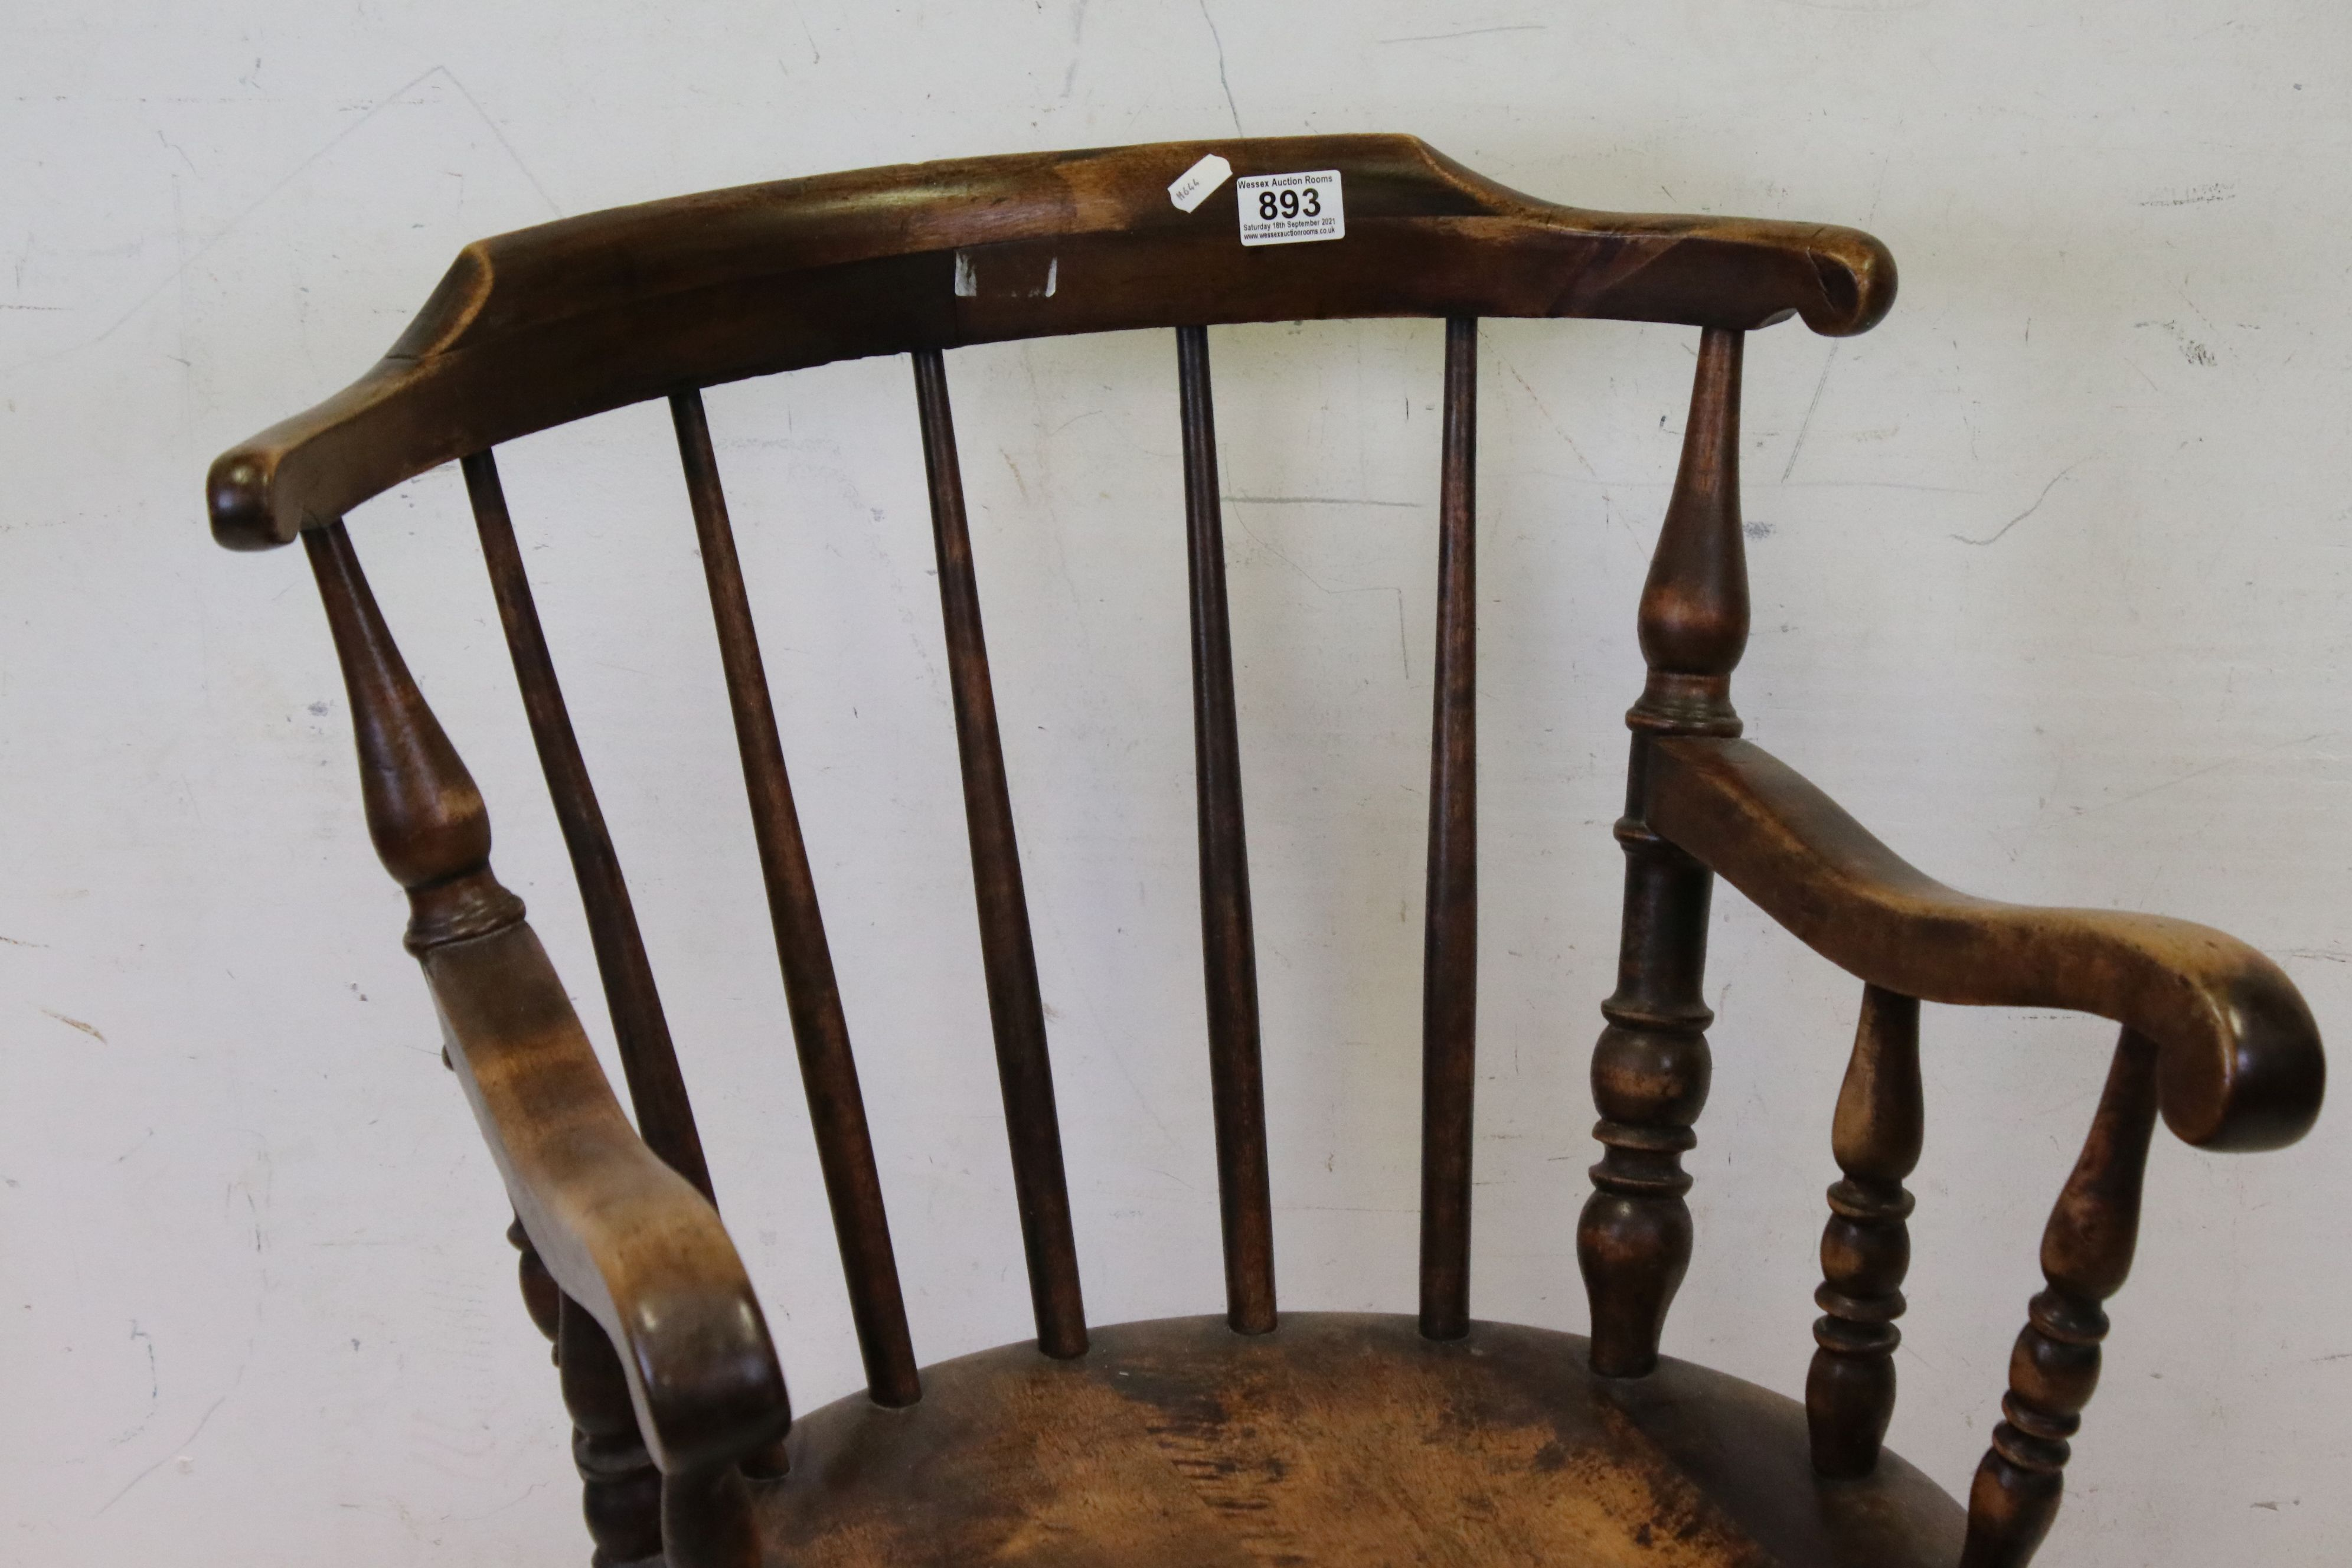 Early 20th century Stickback Elbow Chair with solid circular seat, 88cms high - Image 2 of 3